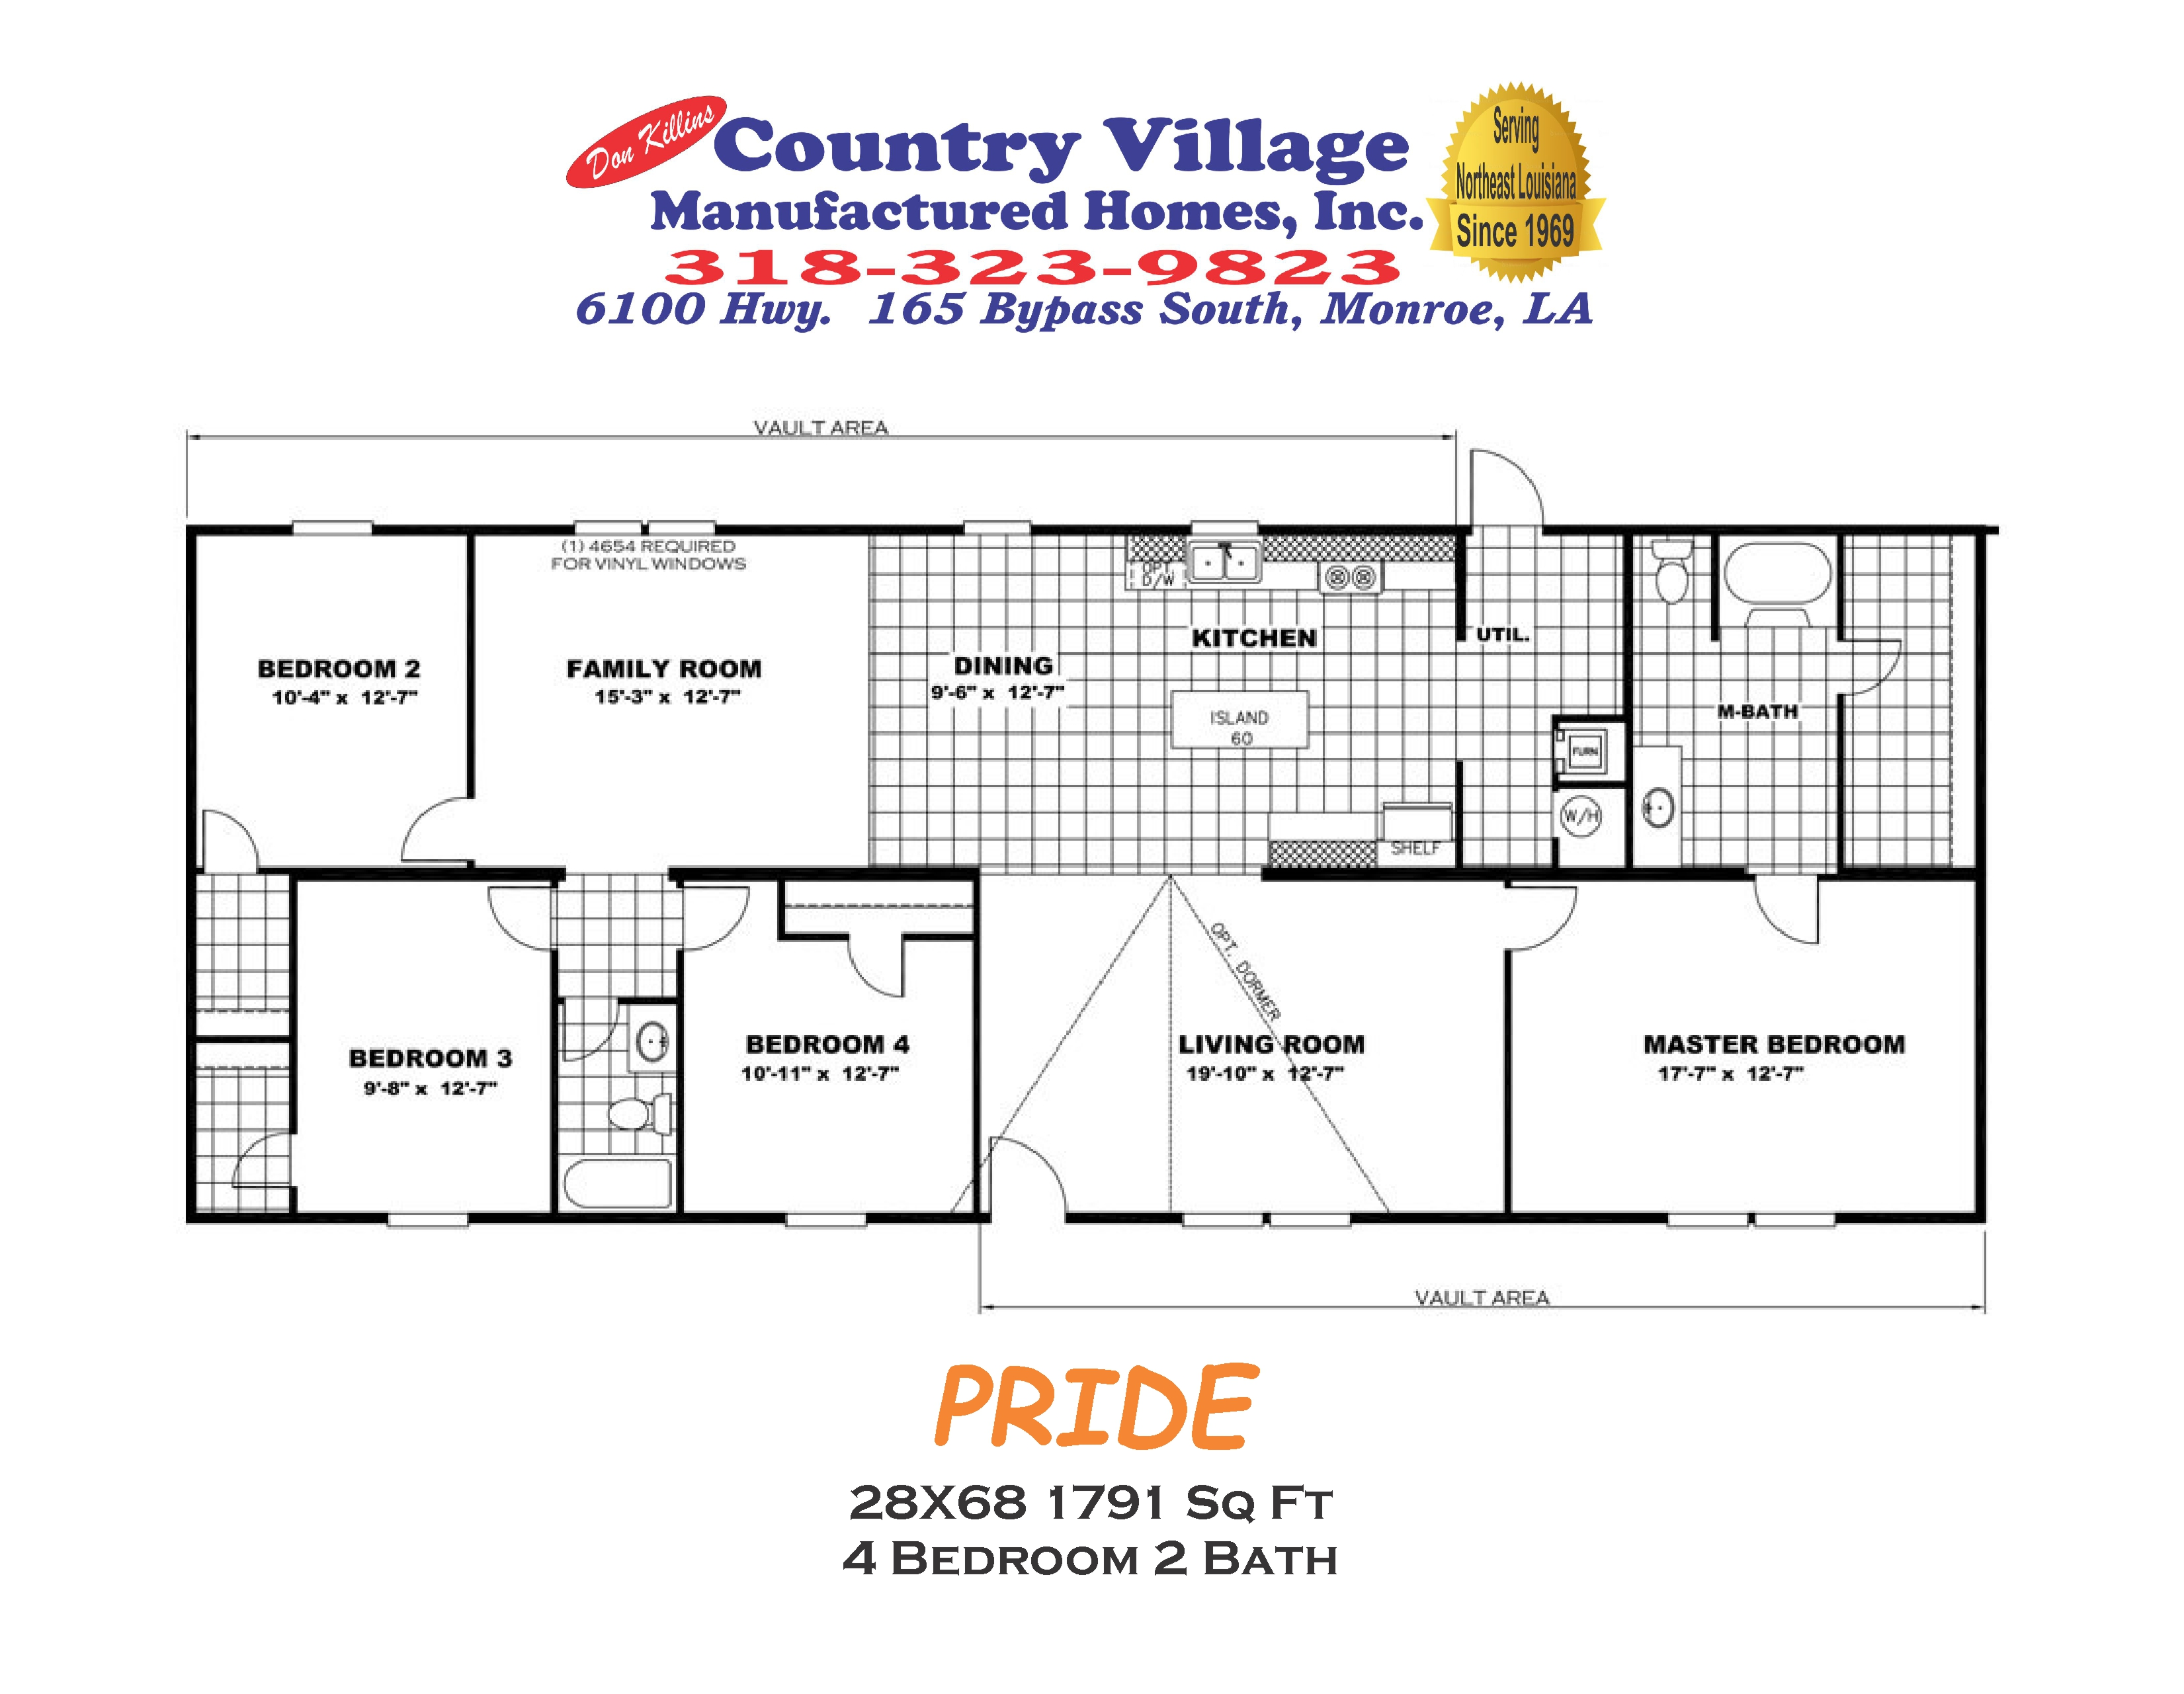 PRIDE 28X68 1791 sq ft 4+2